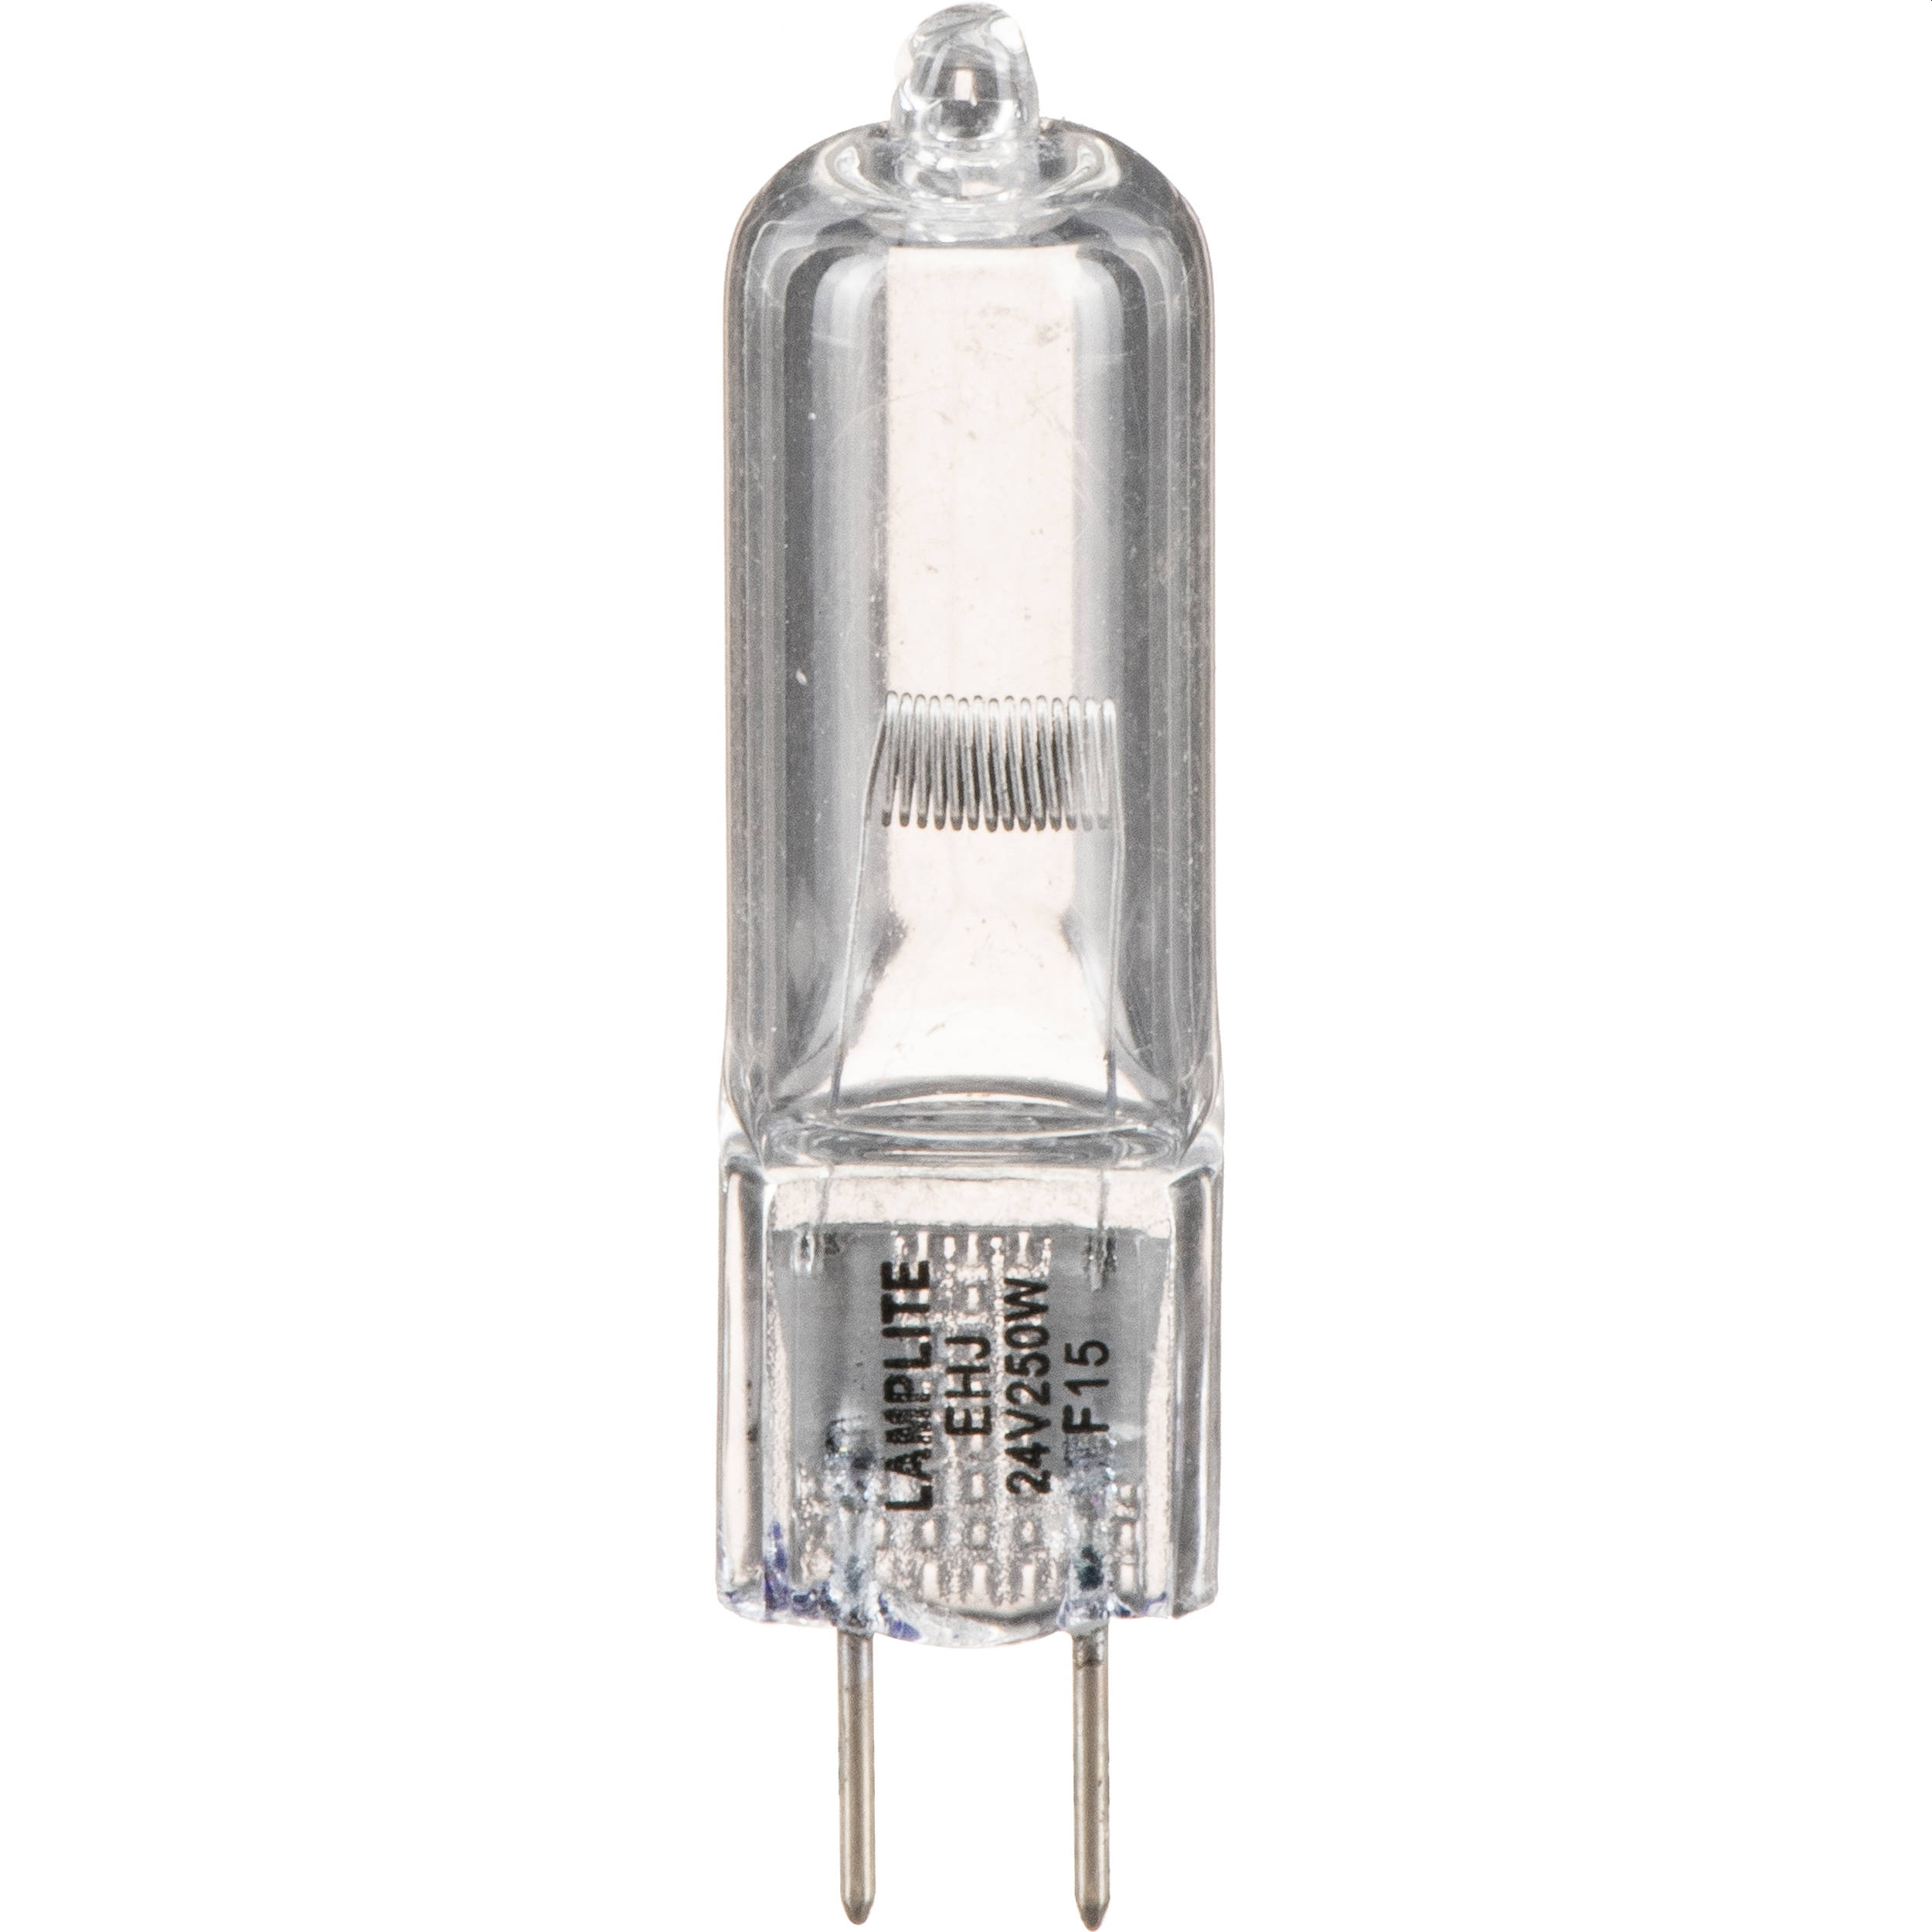 American Dj Ll Ehj 24v Replacement Lamp Discontinued Clearance Canada S Favourite Music Store Acclaim Sound And Lighting